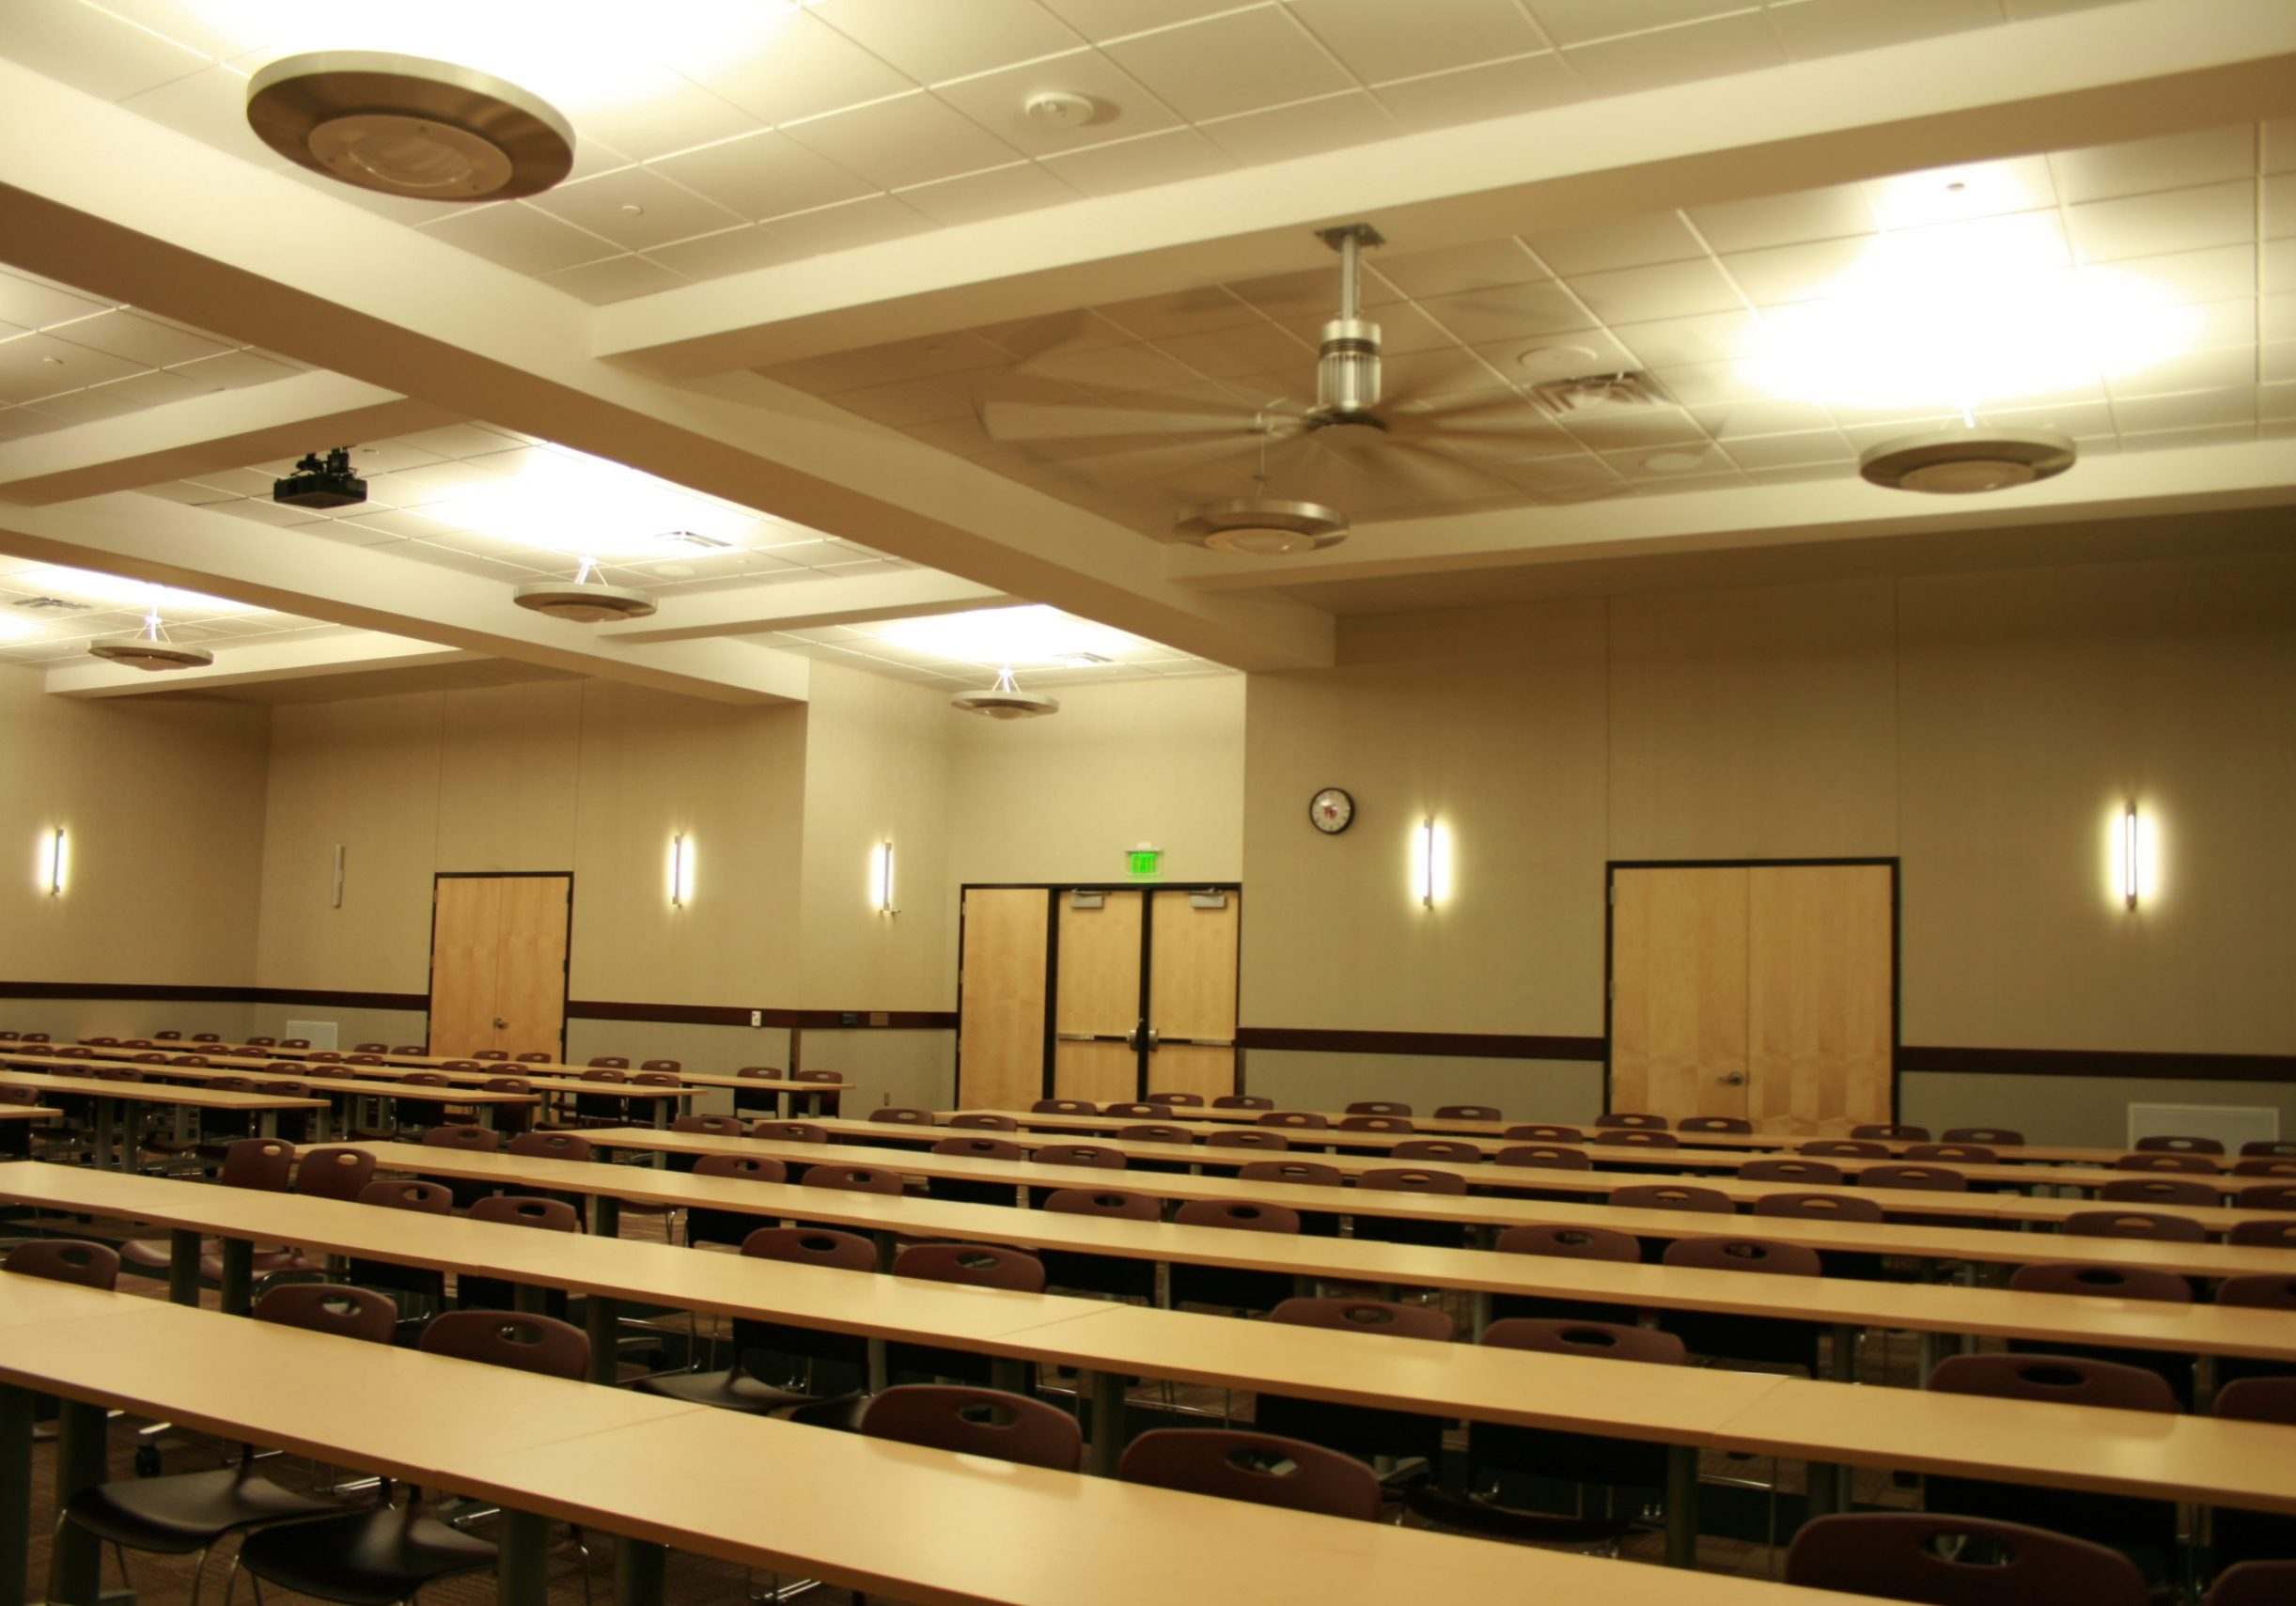 Spacious conference room with bright lights installed